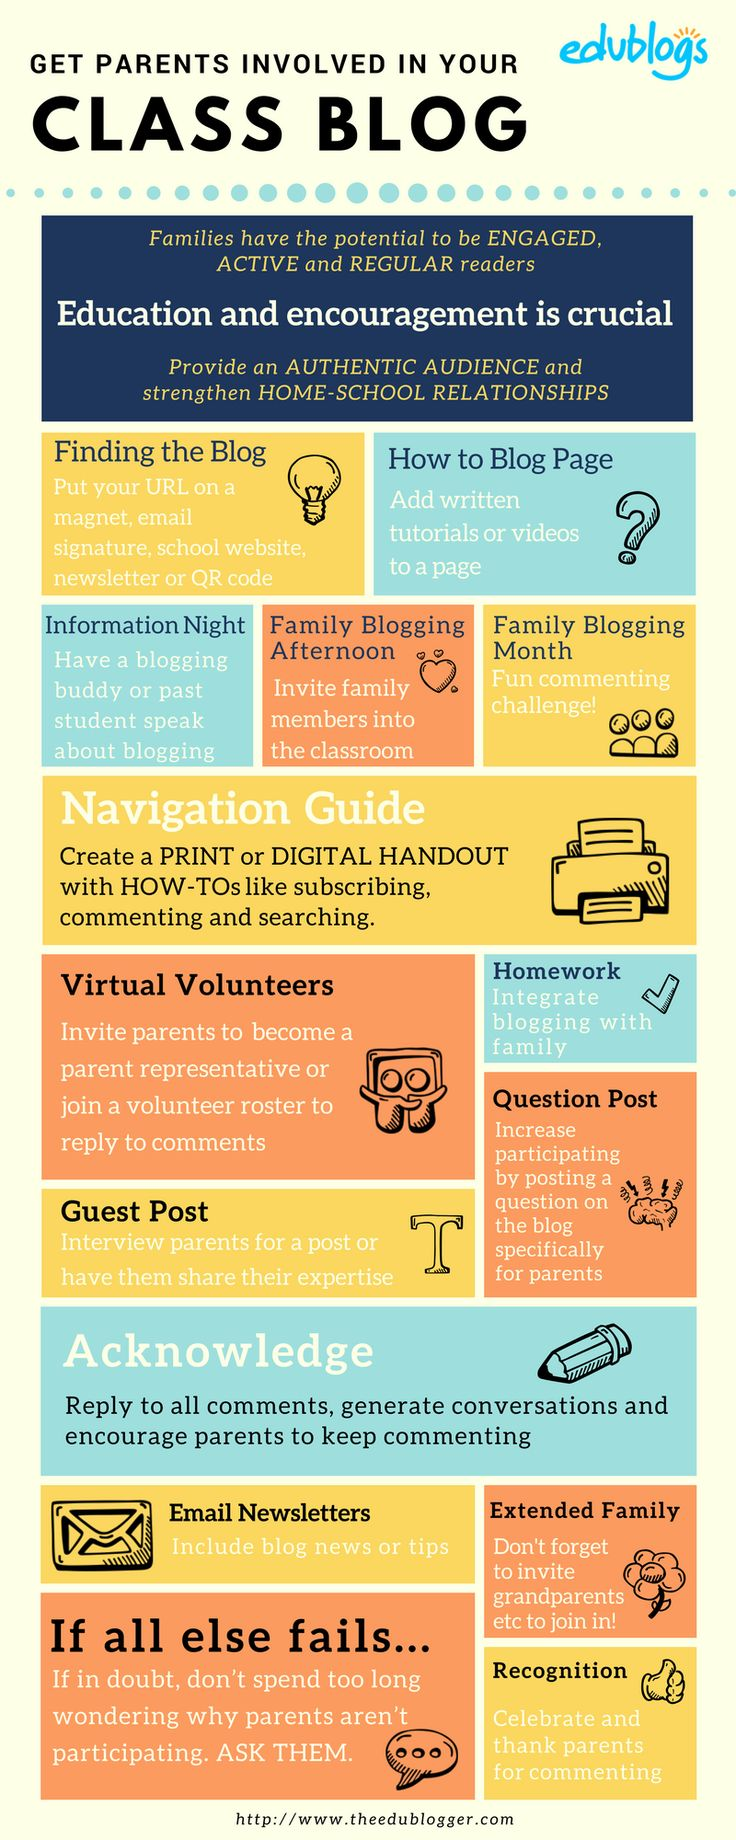 When it comes to blogging, parent participation can't be left to chance. We have put together a comprehensive guide on educating and involving families in your class blog.